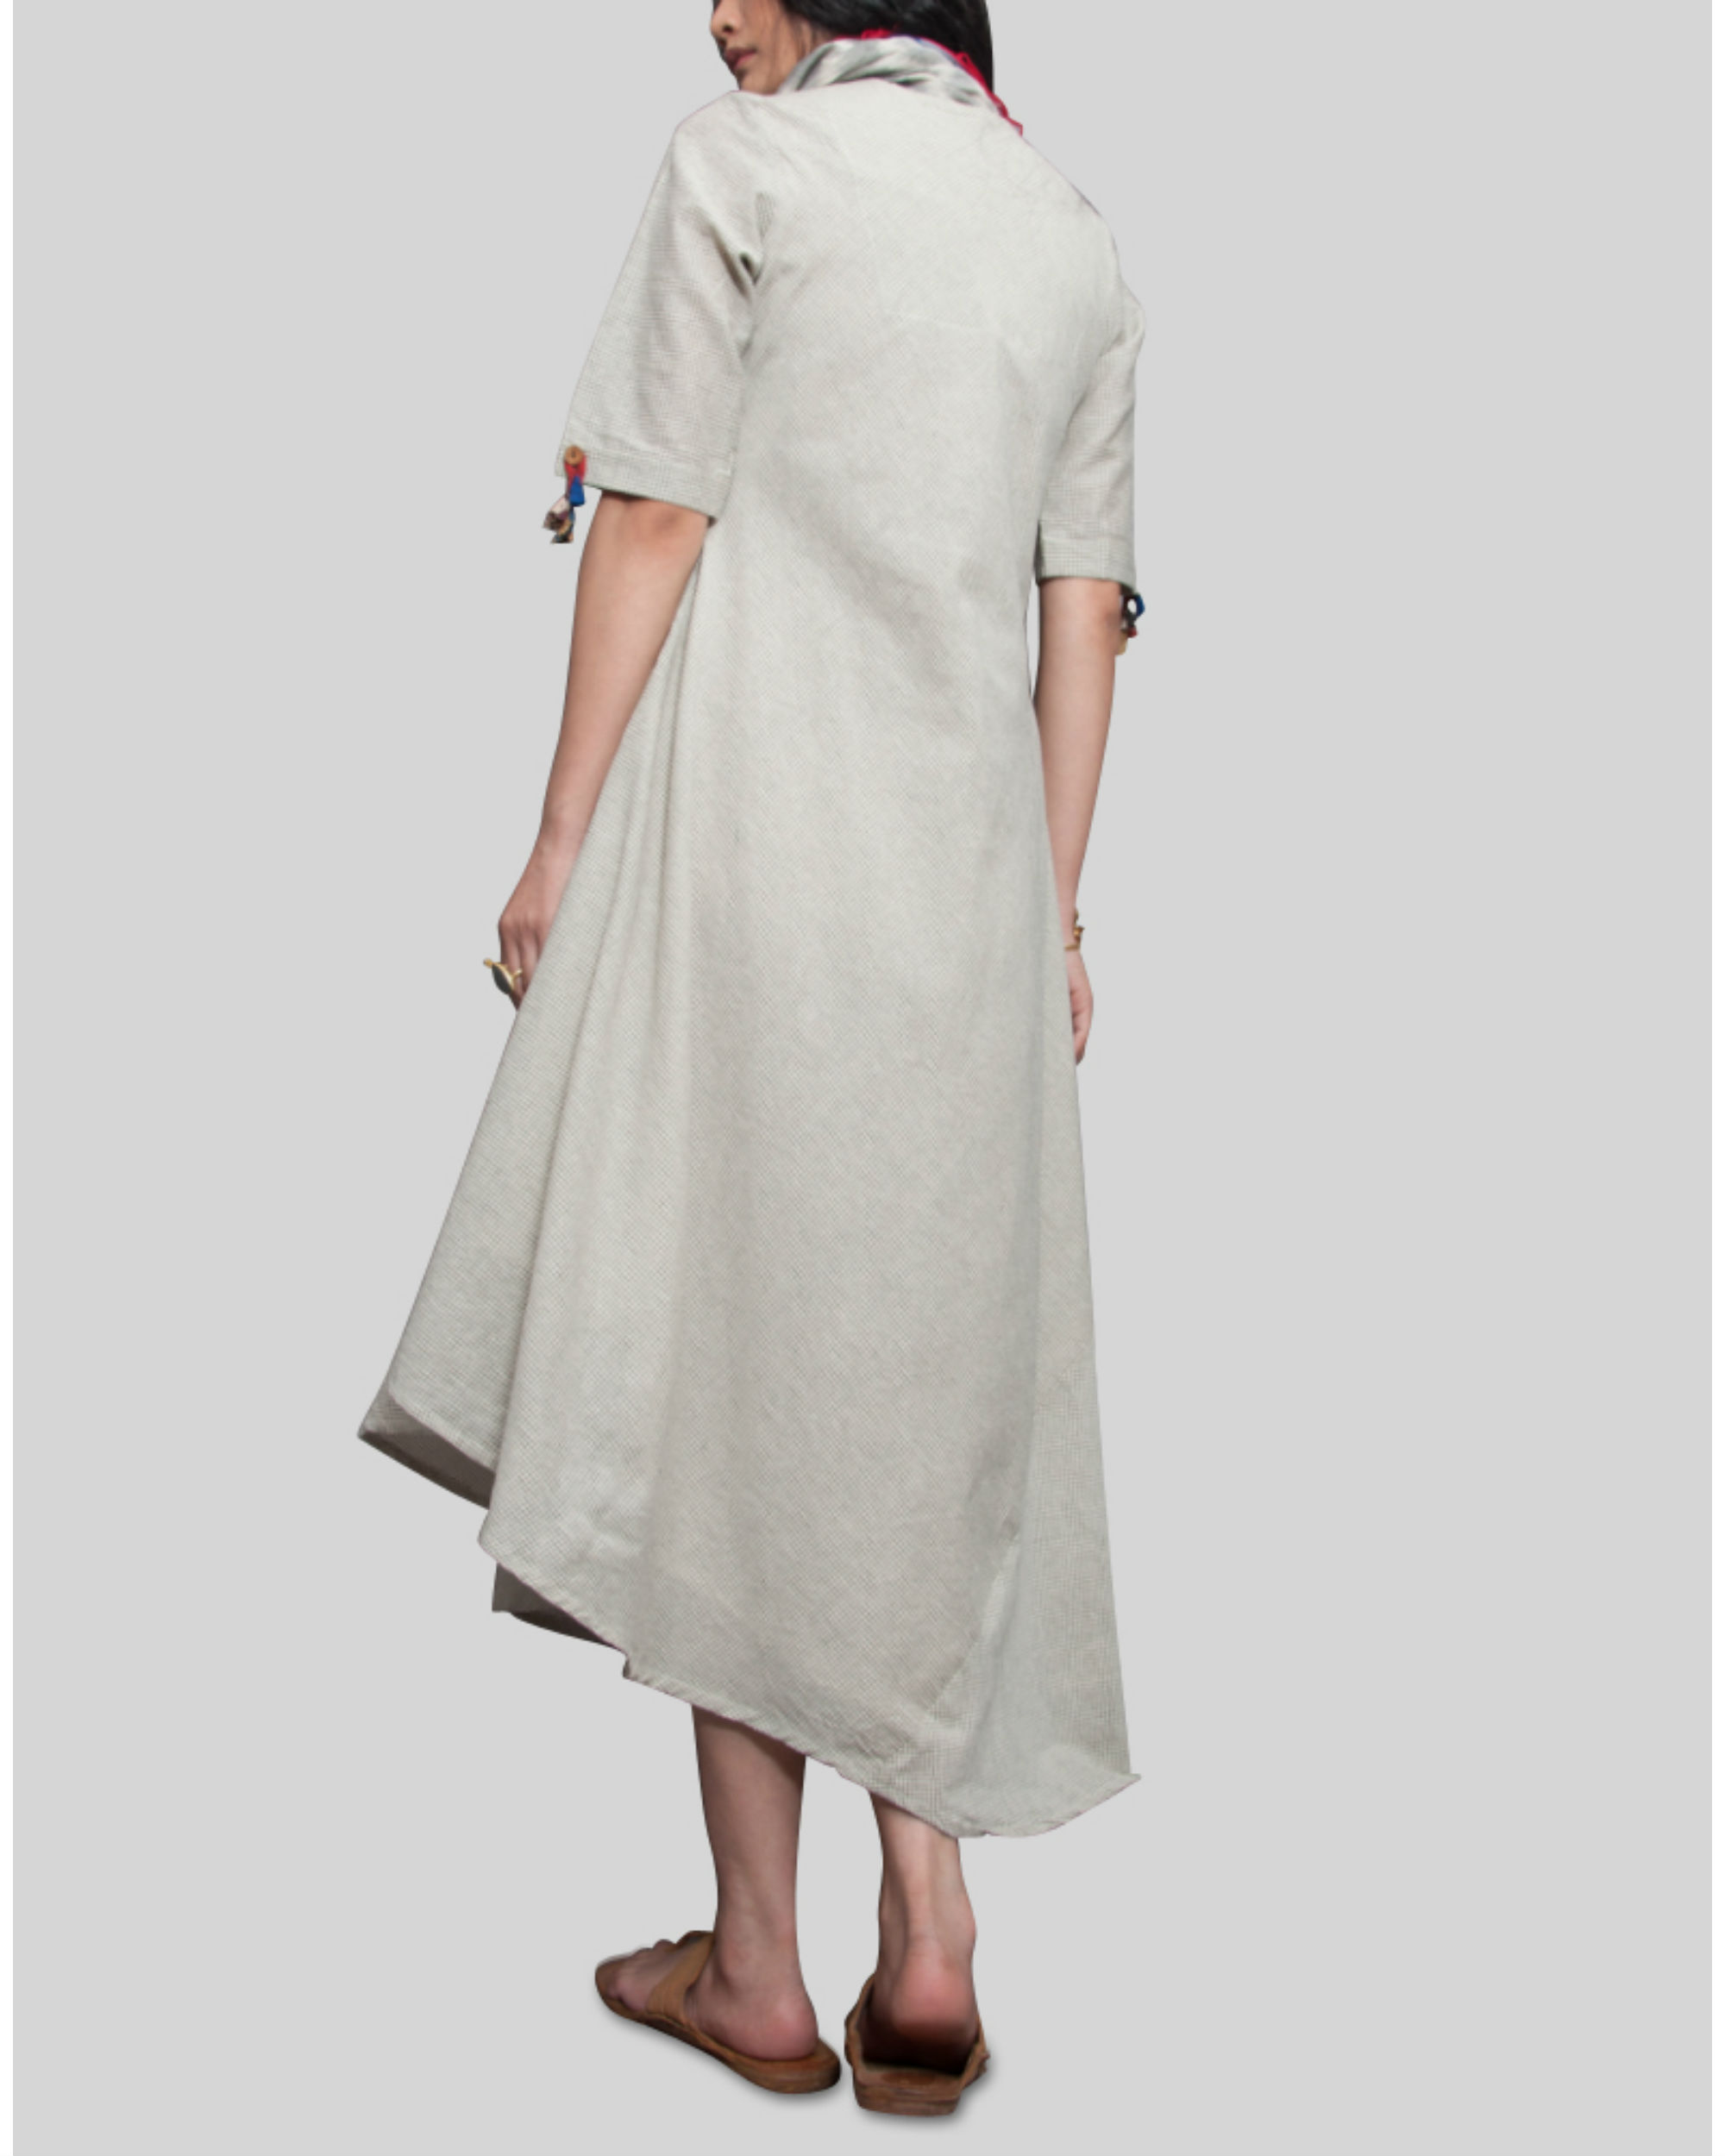 Cowl Dress: Off White With Black Box Effect Cowl Dress By BOHAME